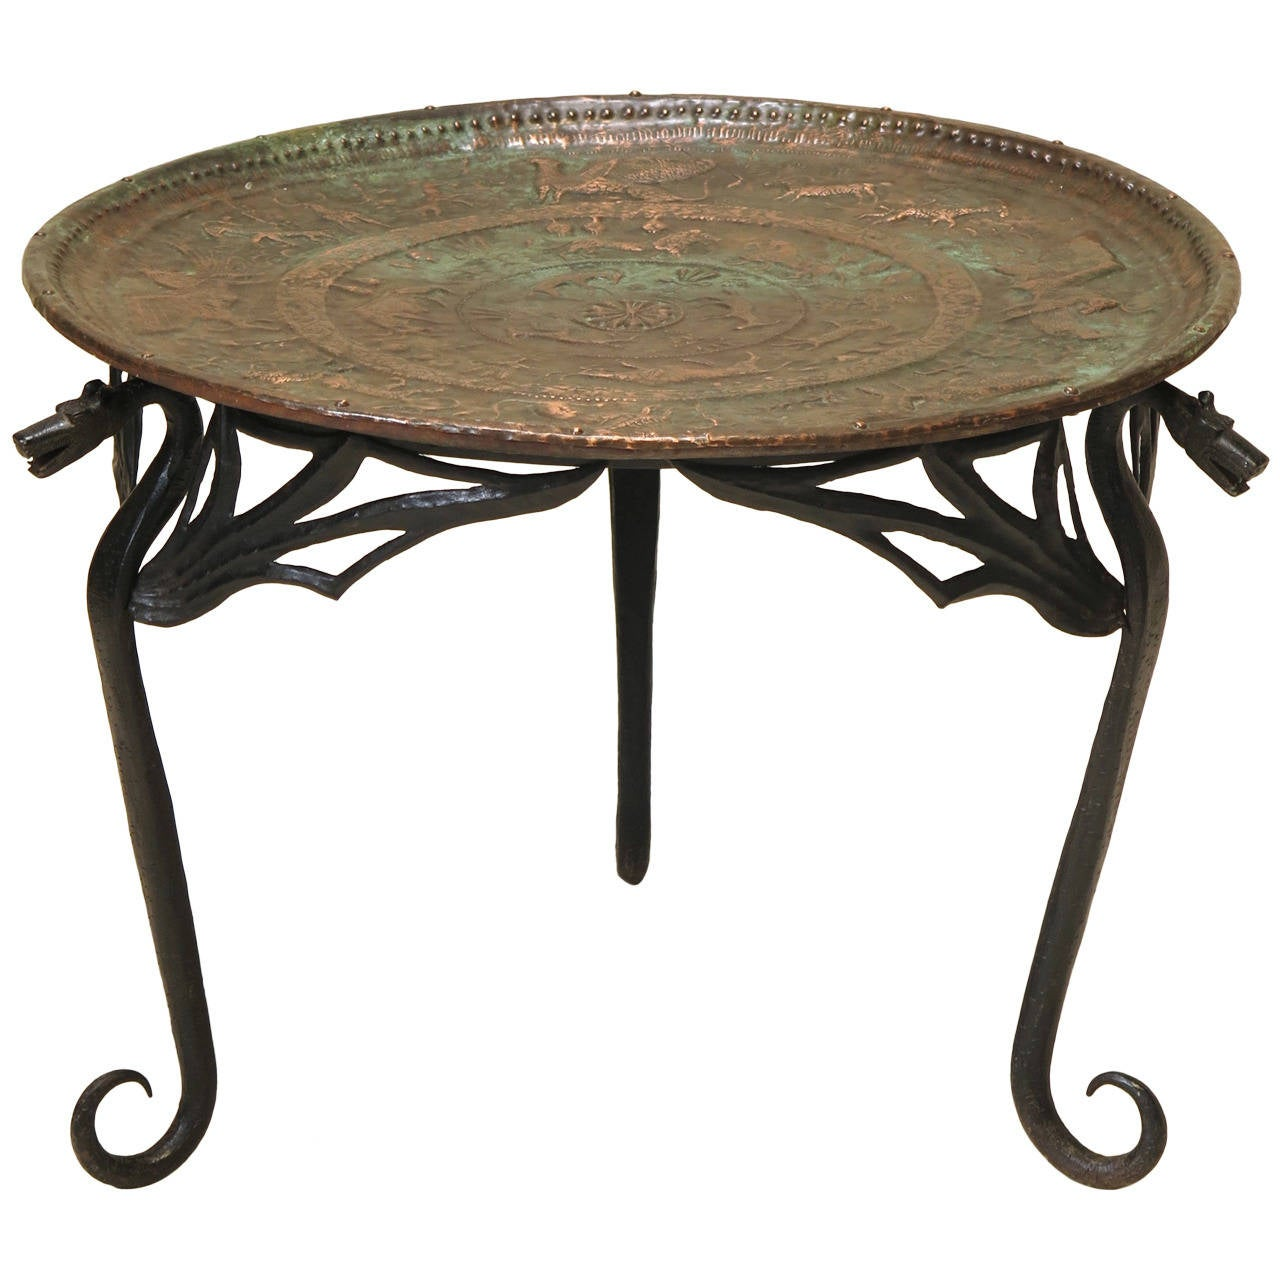 Wrought Iron Dragon Coffee Table With Copper Top France Early 1900s For Sale At 1stdibs